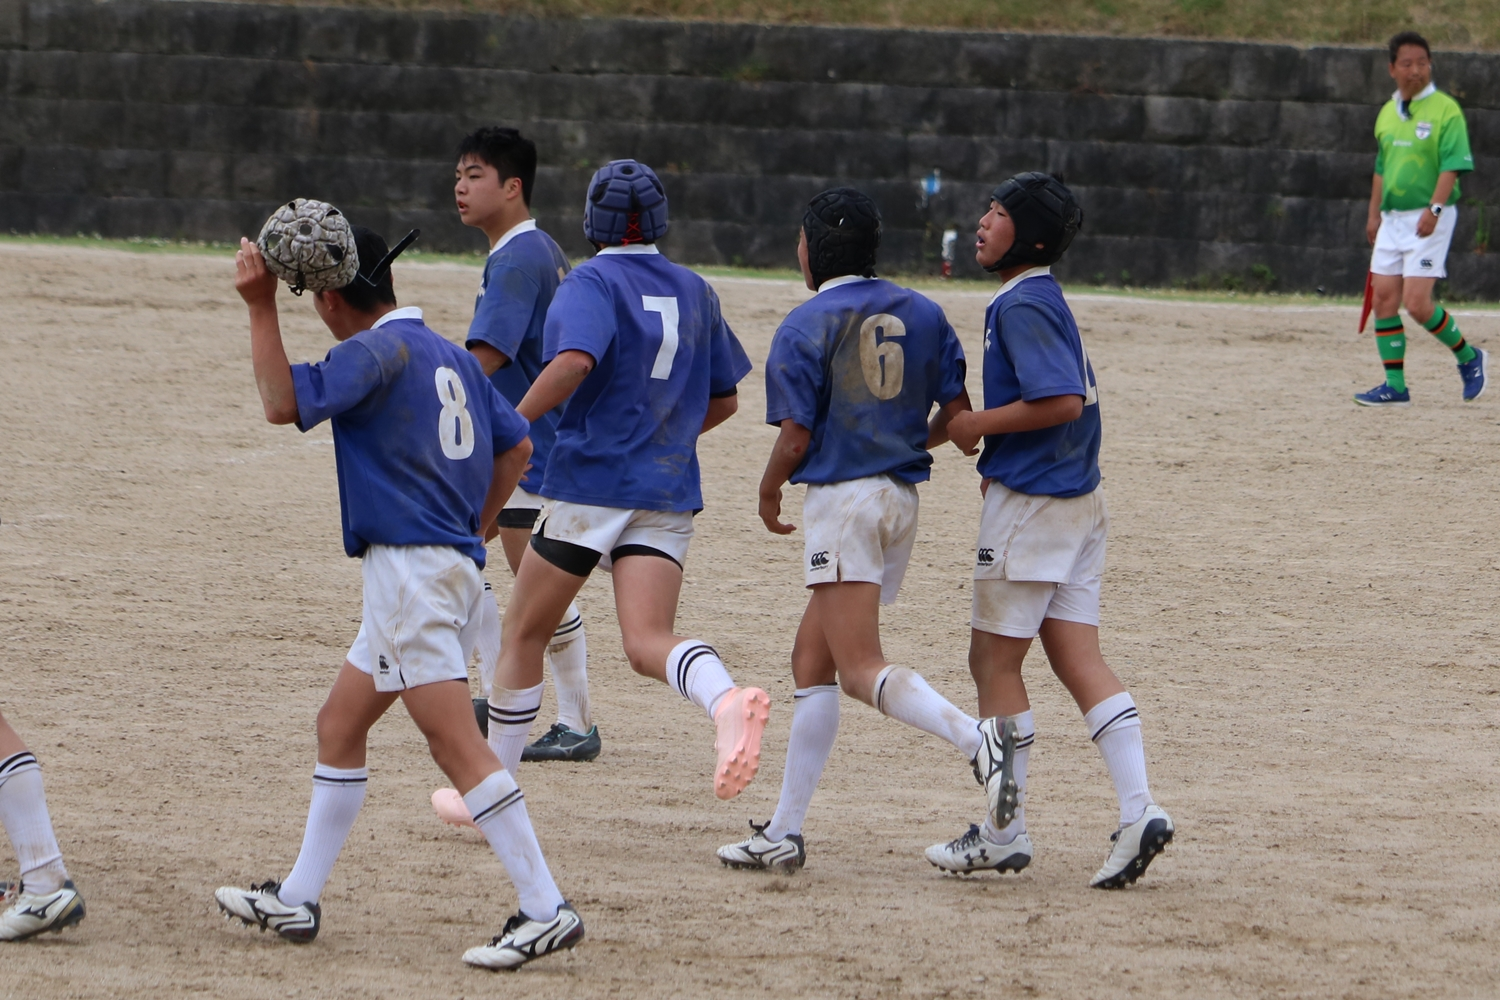 youngwave_2018072